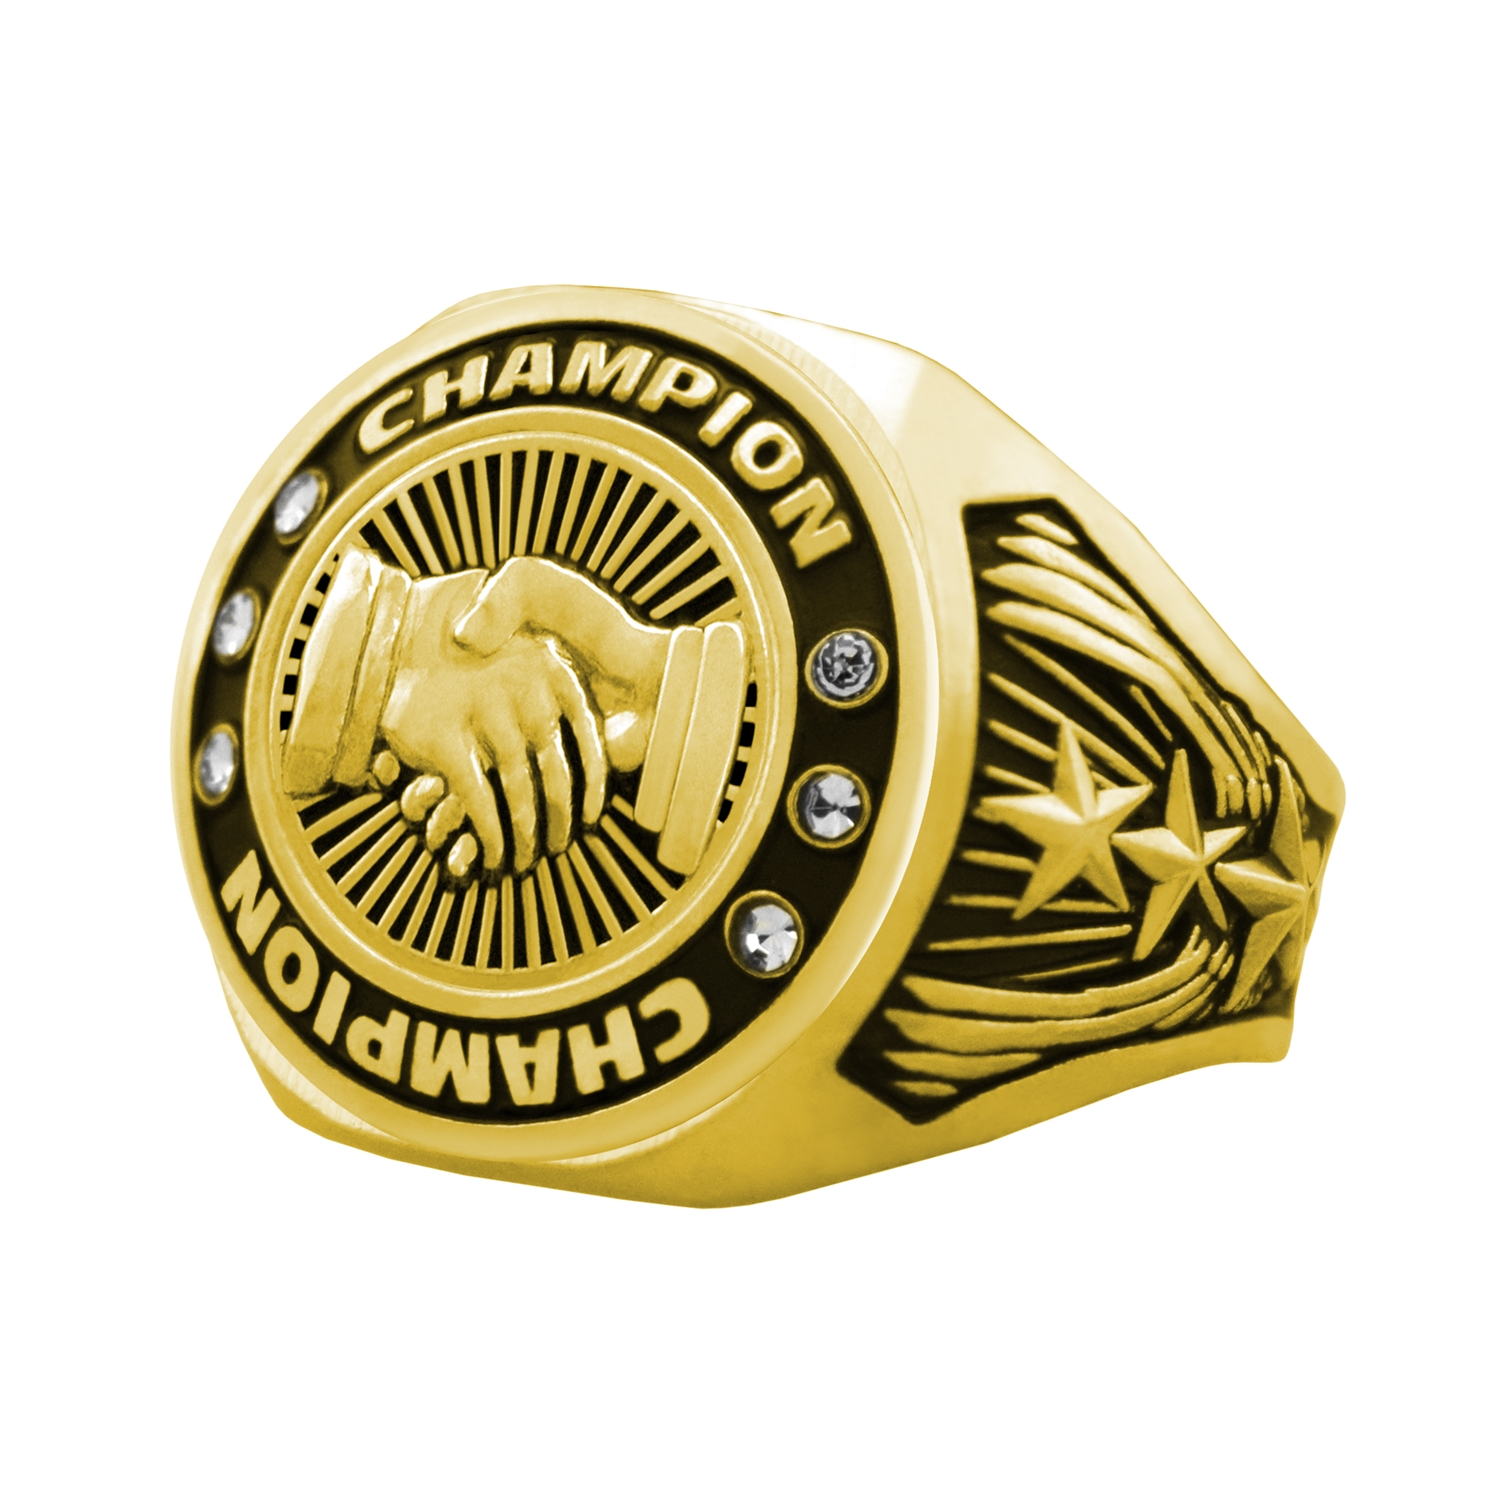 Champion Business Ring